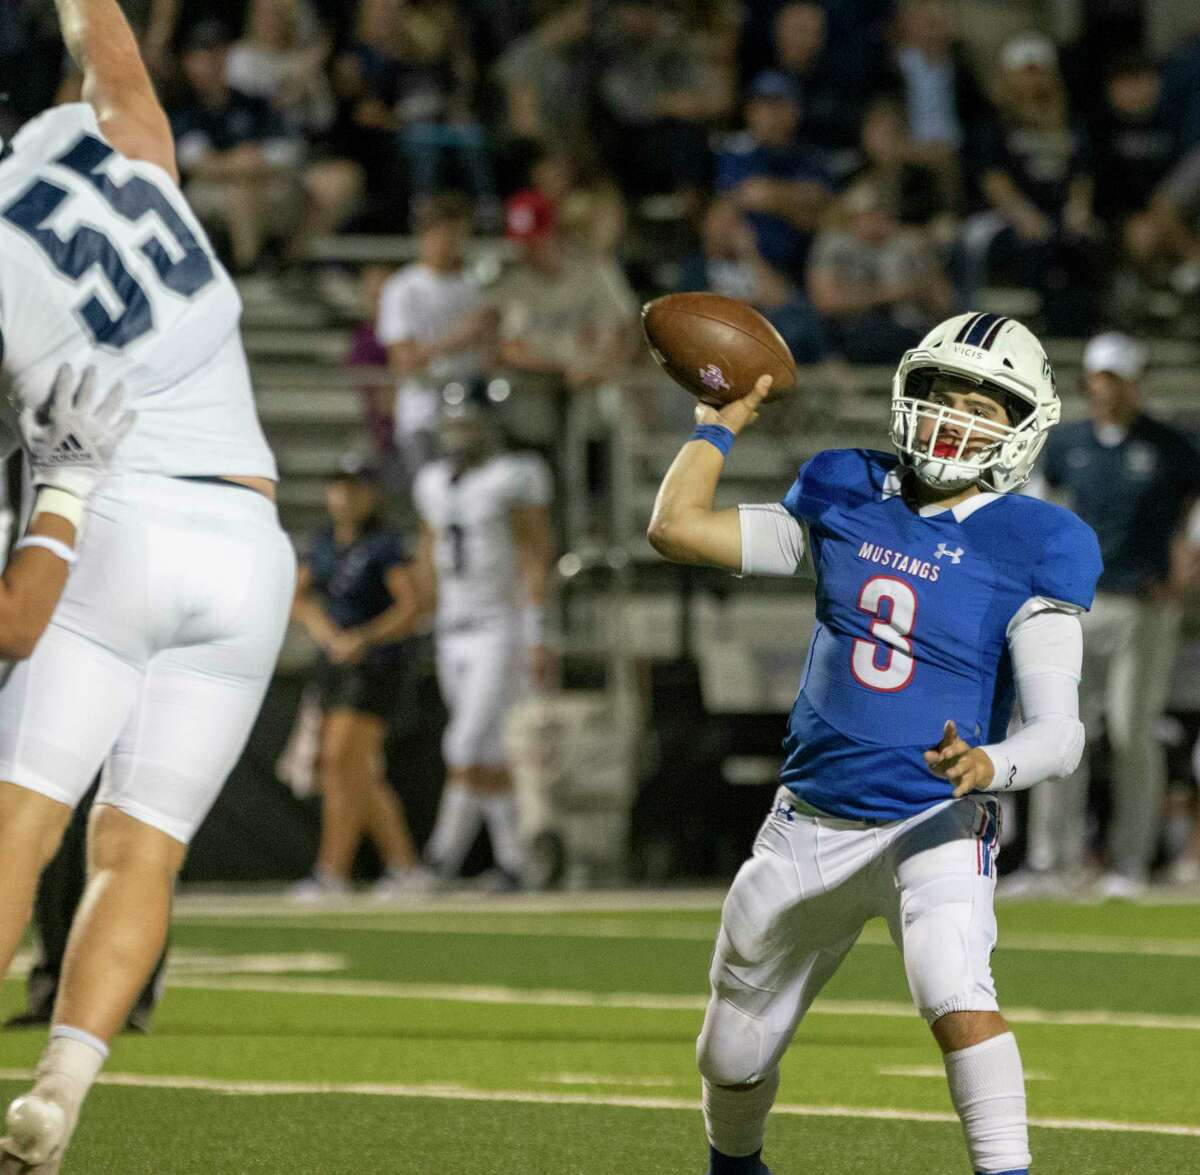 Midland Christian's Ryver Rodriguez looks to pass as Libert Christian's David O'Neal tries to knock it down 10/08/2021 at Gorgon Awtry Field. Tim Fischer/Reporter-Telegram